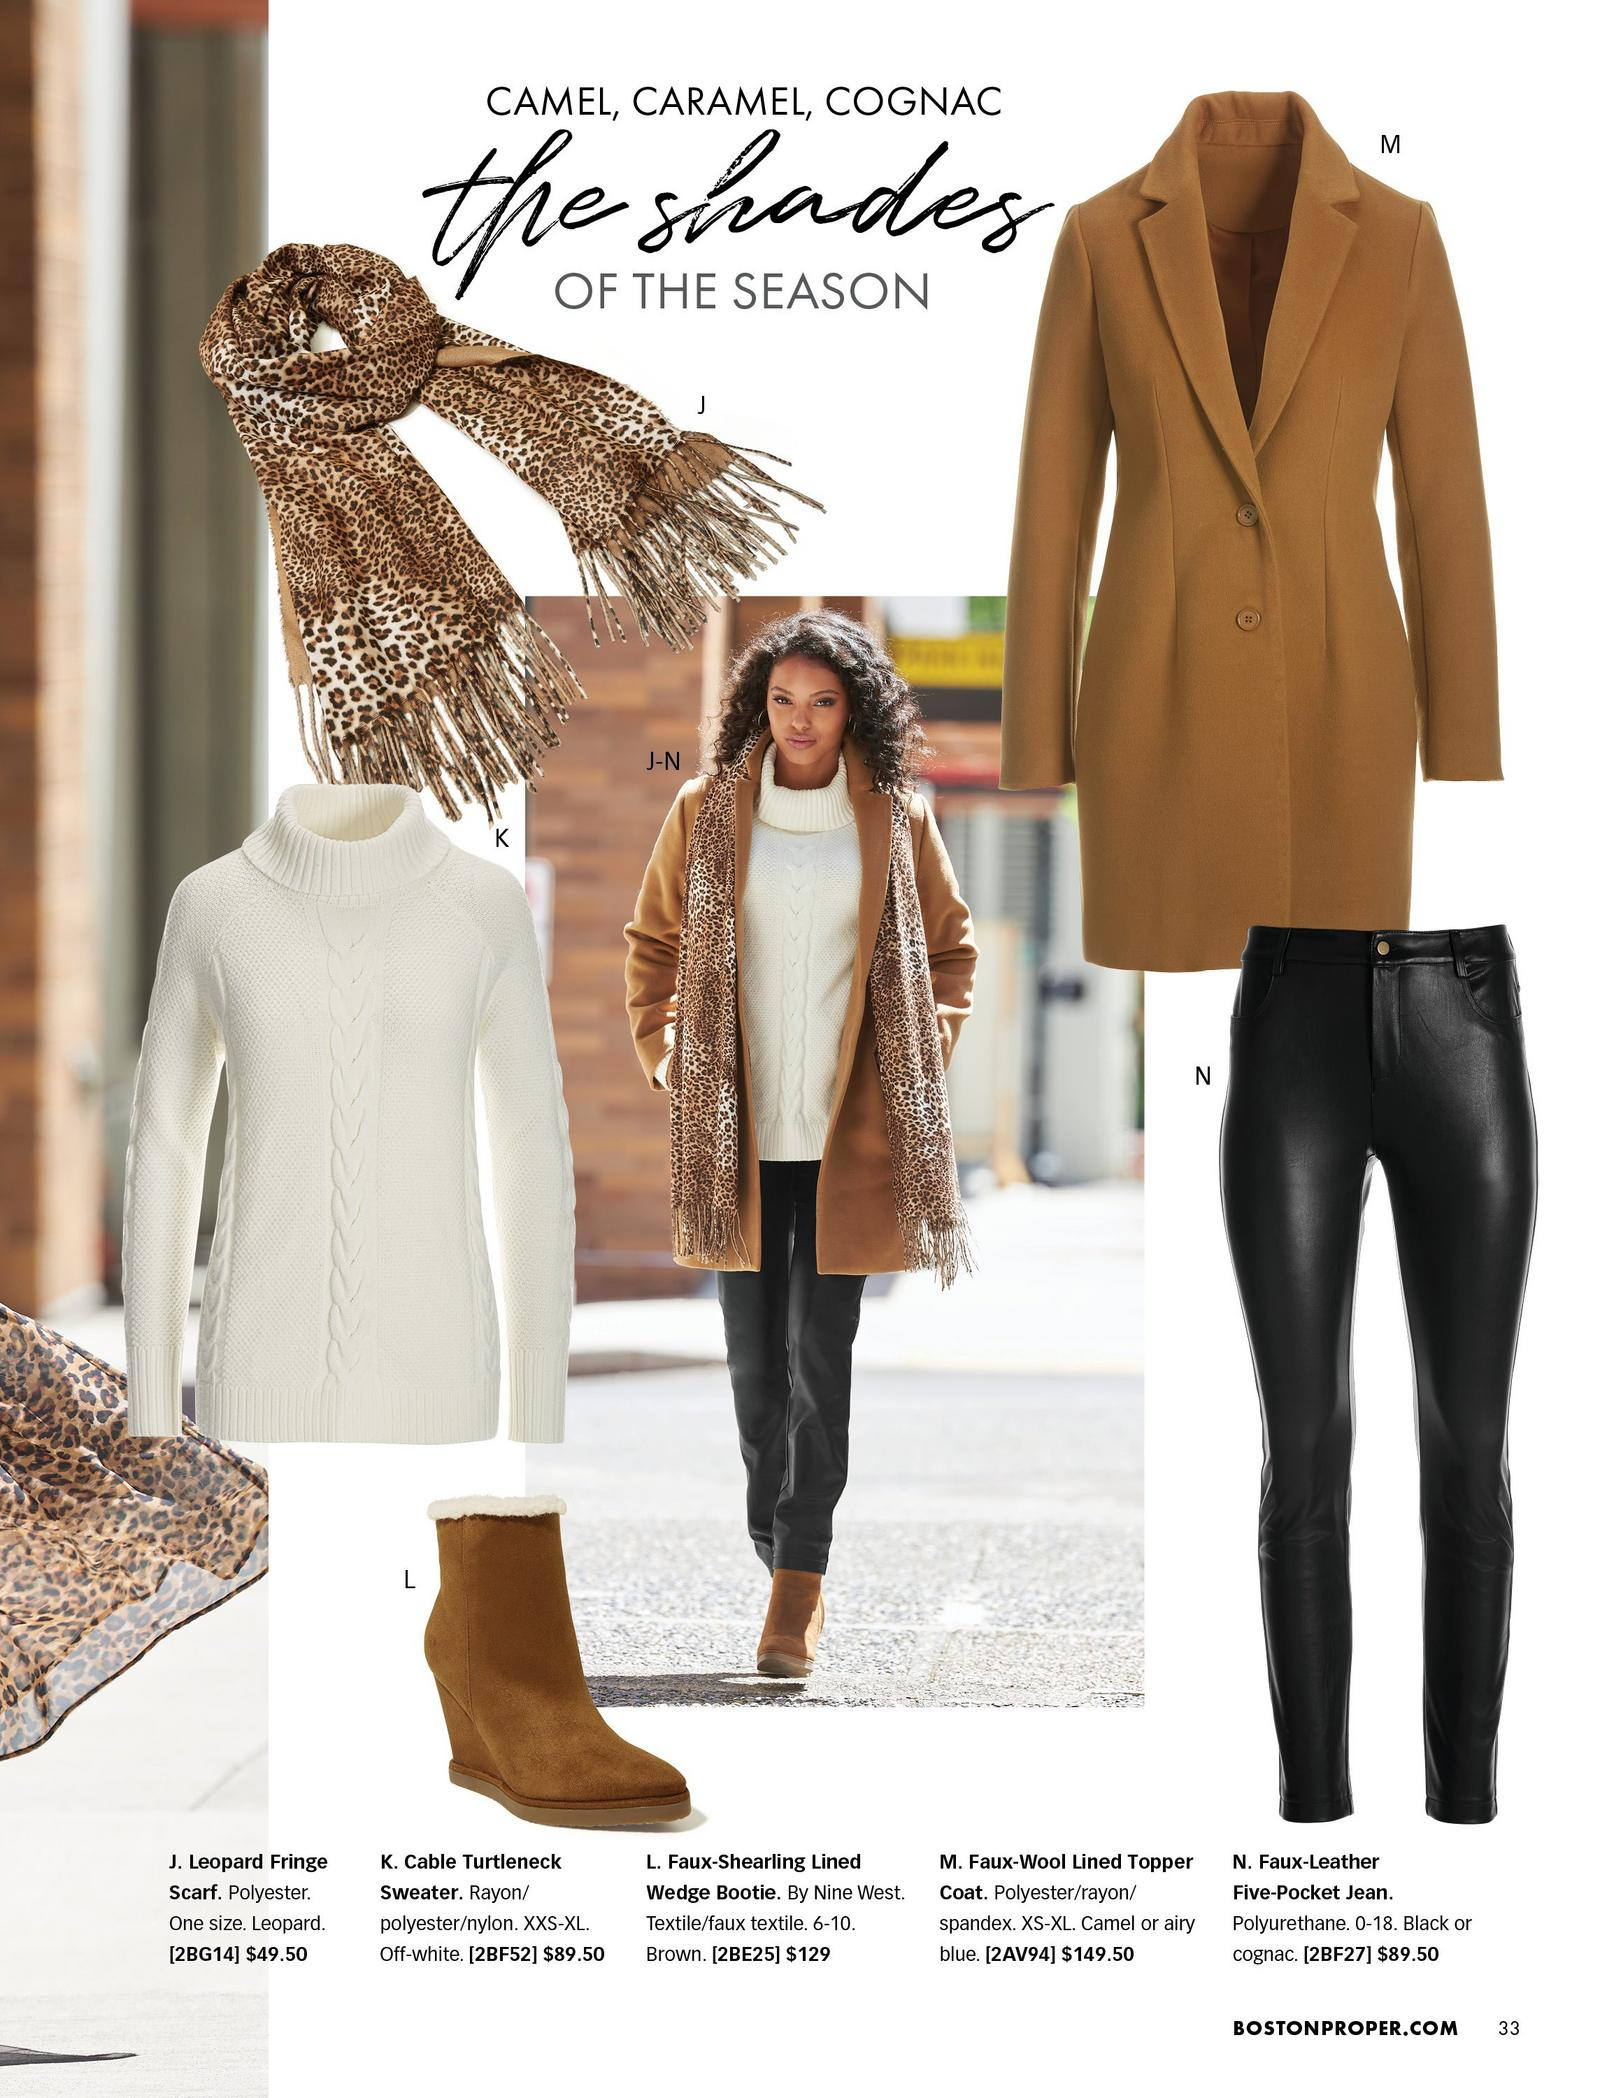 model wearing a camel colored faux-wool topper coat, black faux-leather jeans, leopard fringe scarf, white cable knit turtleneck sweater, and grown faux-shearling lined wedge bootie. all items shown separate around the model shot.